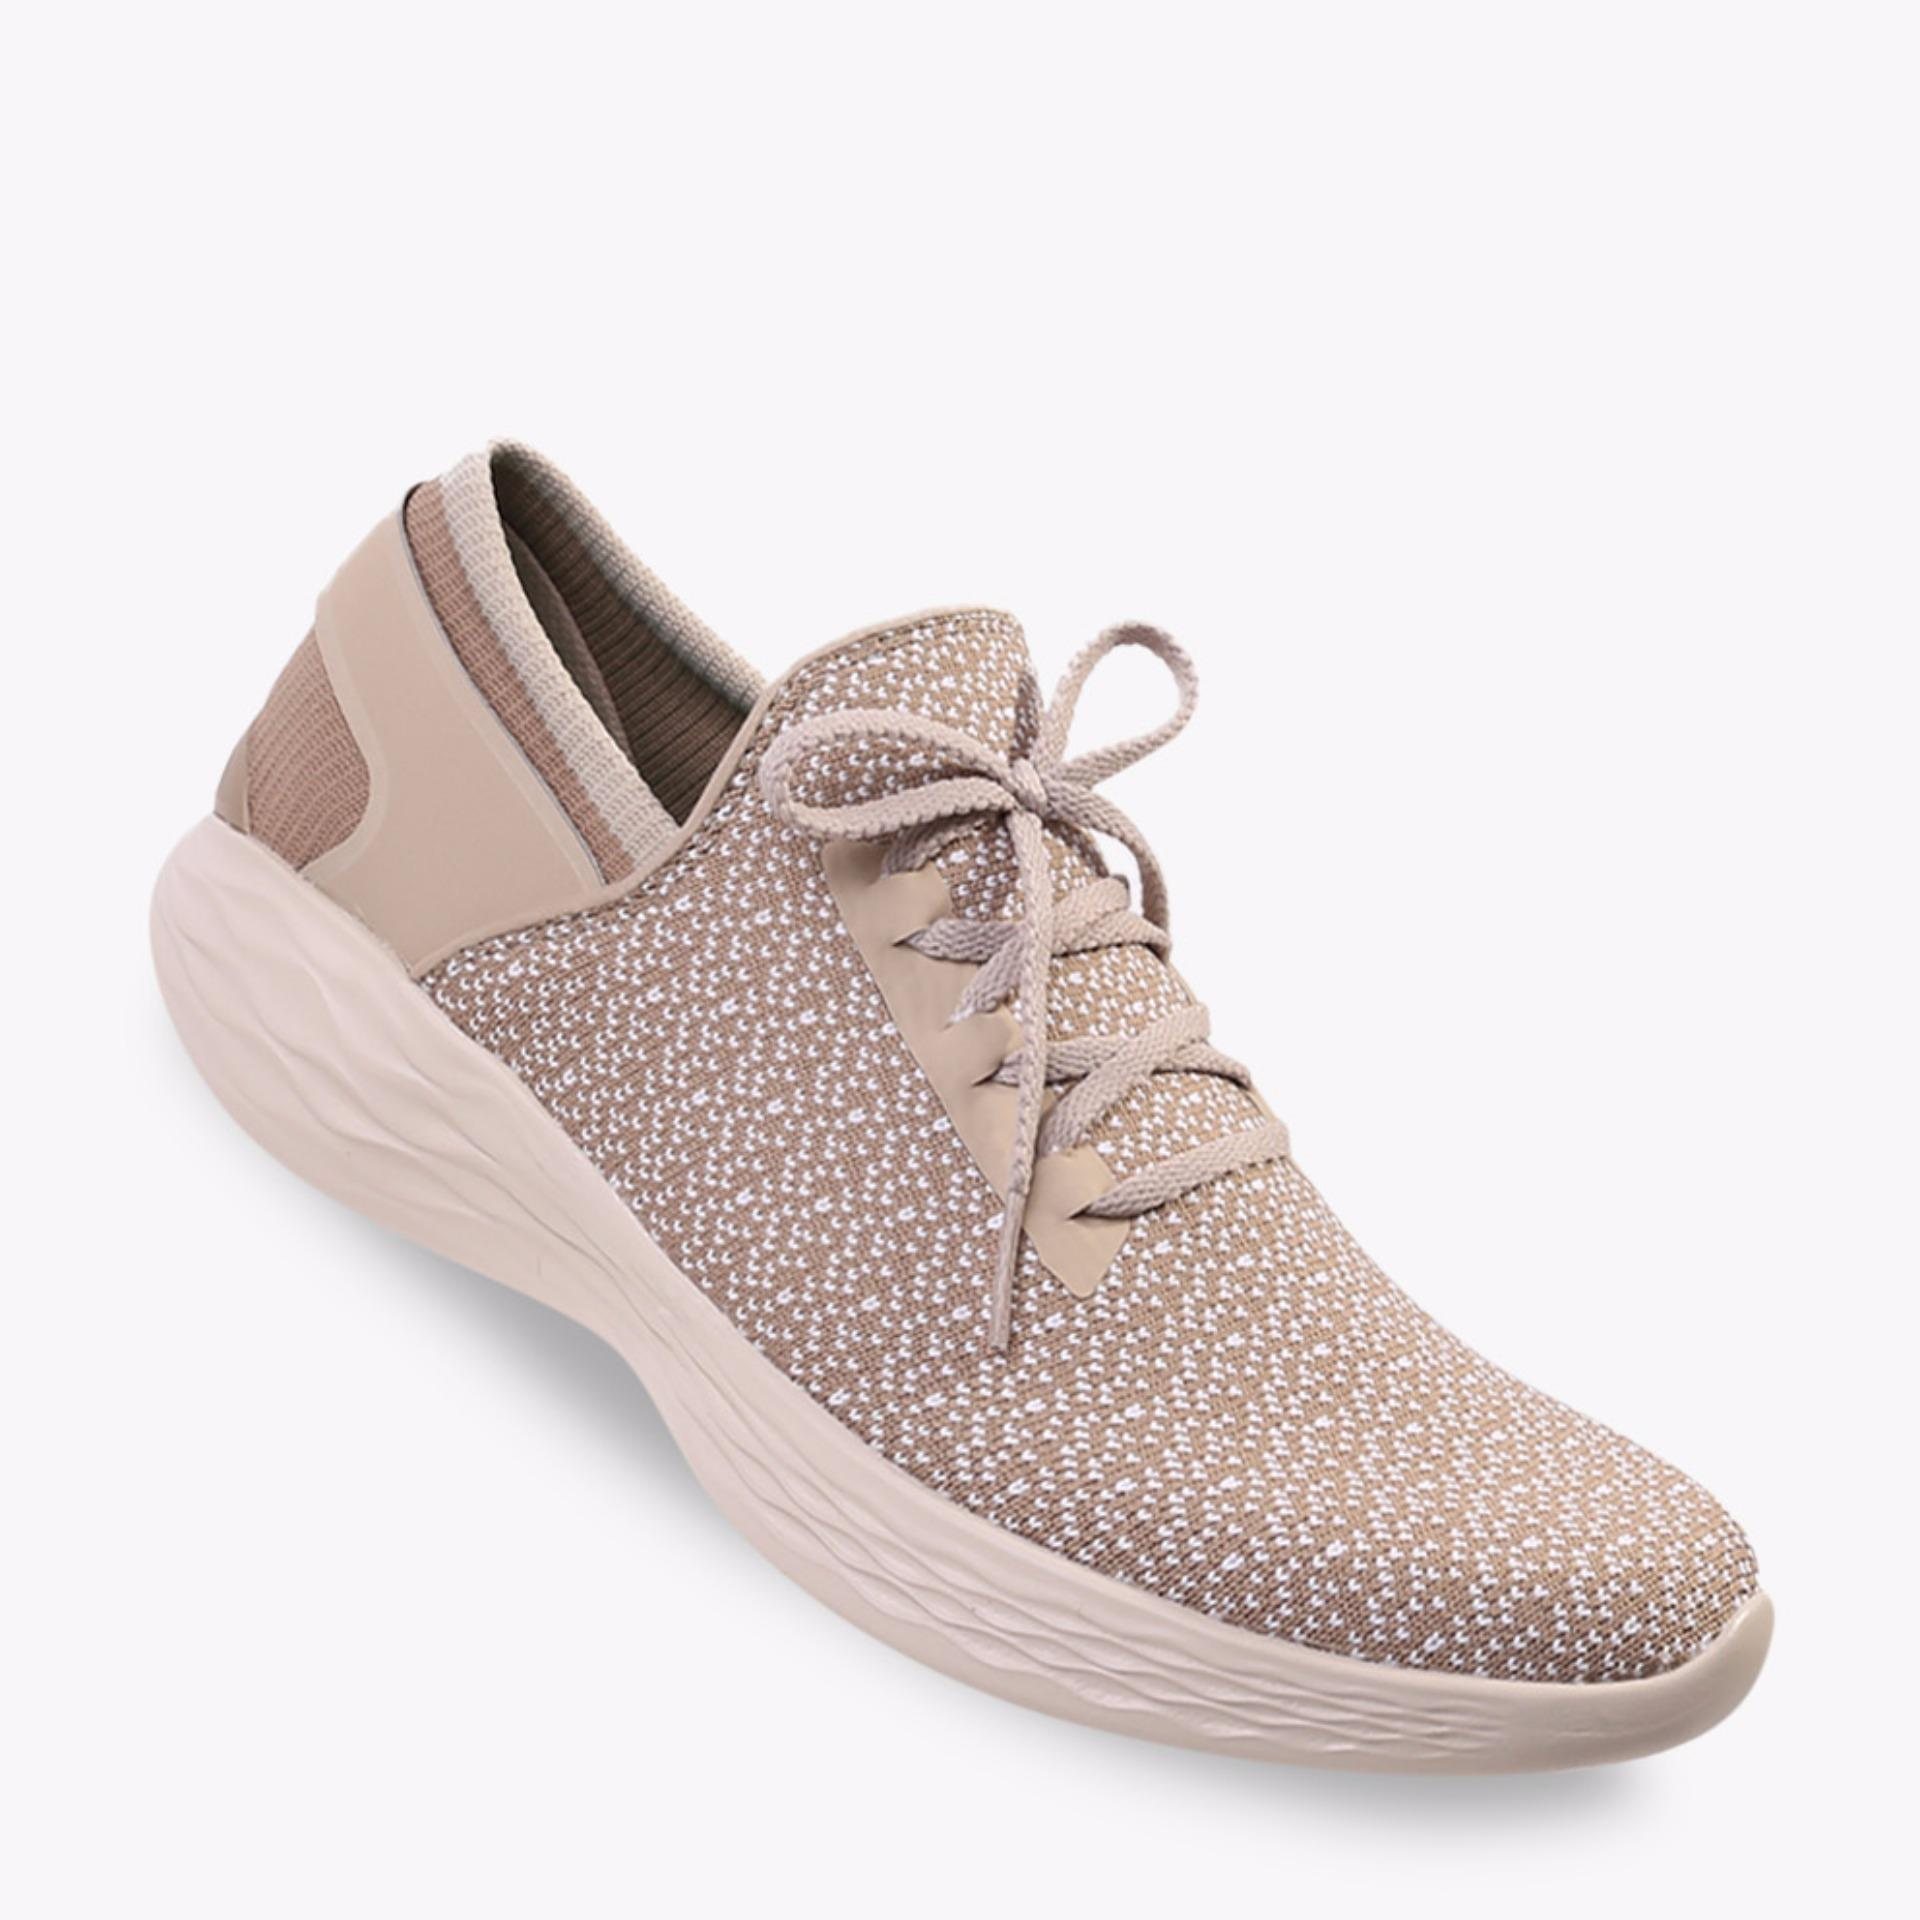 Toko Skechers You Inspire Women S Sneakers Shoes Khaki Online Terpercaya